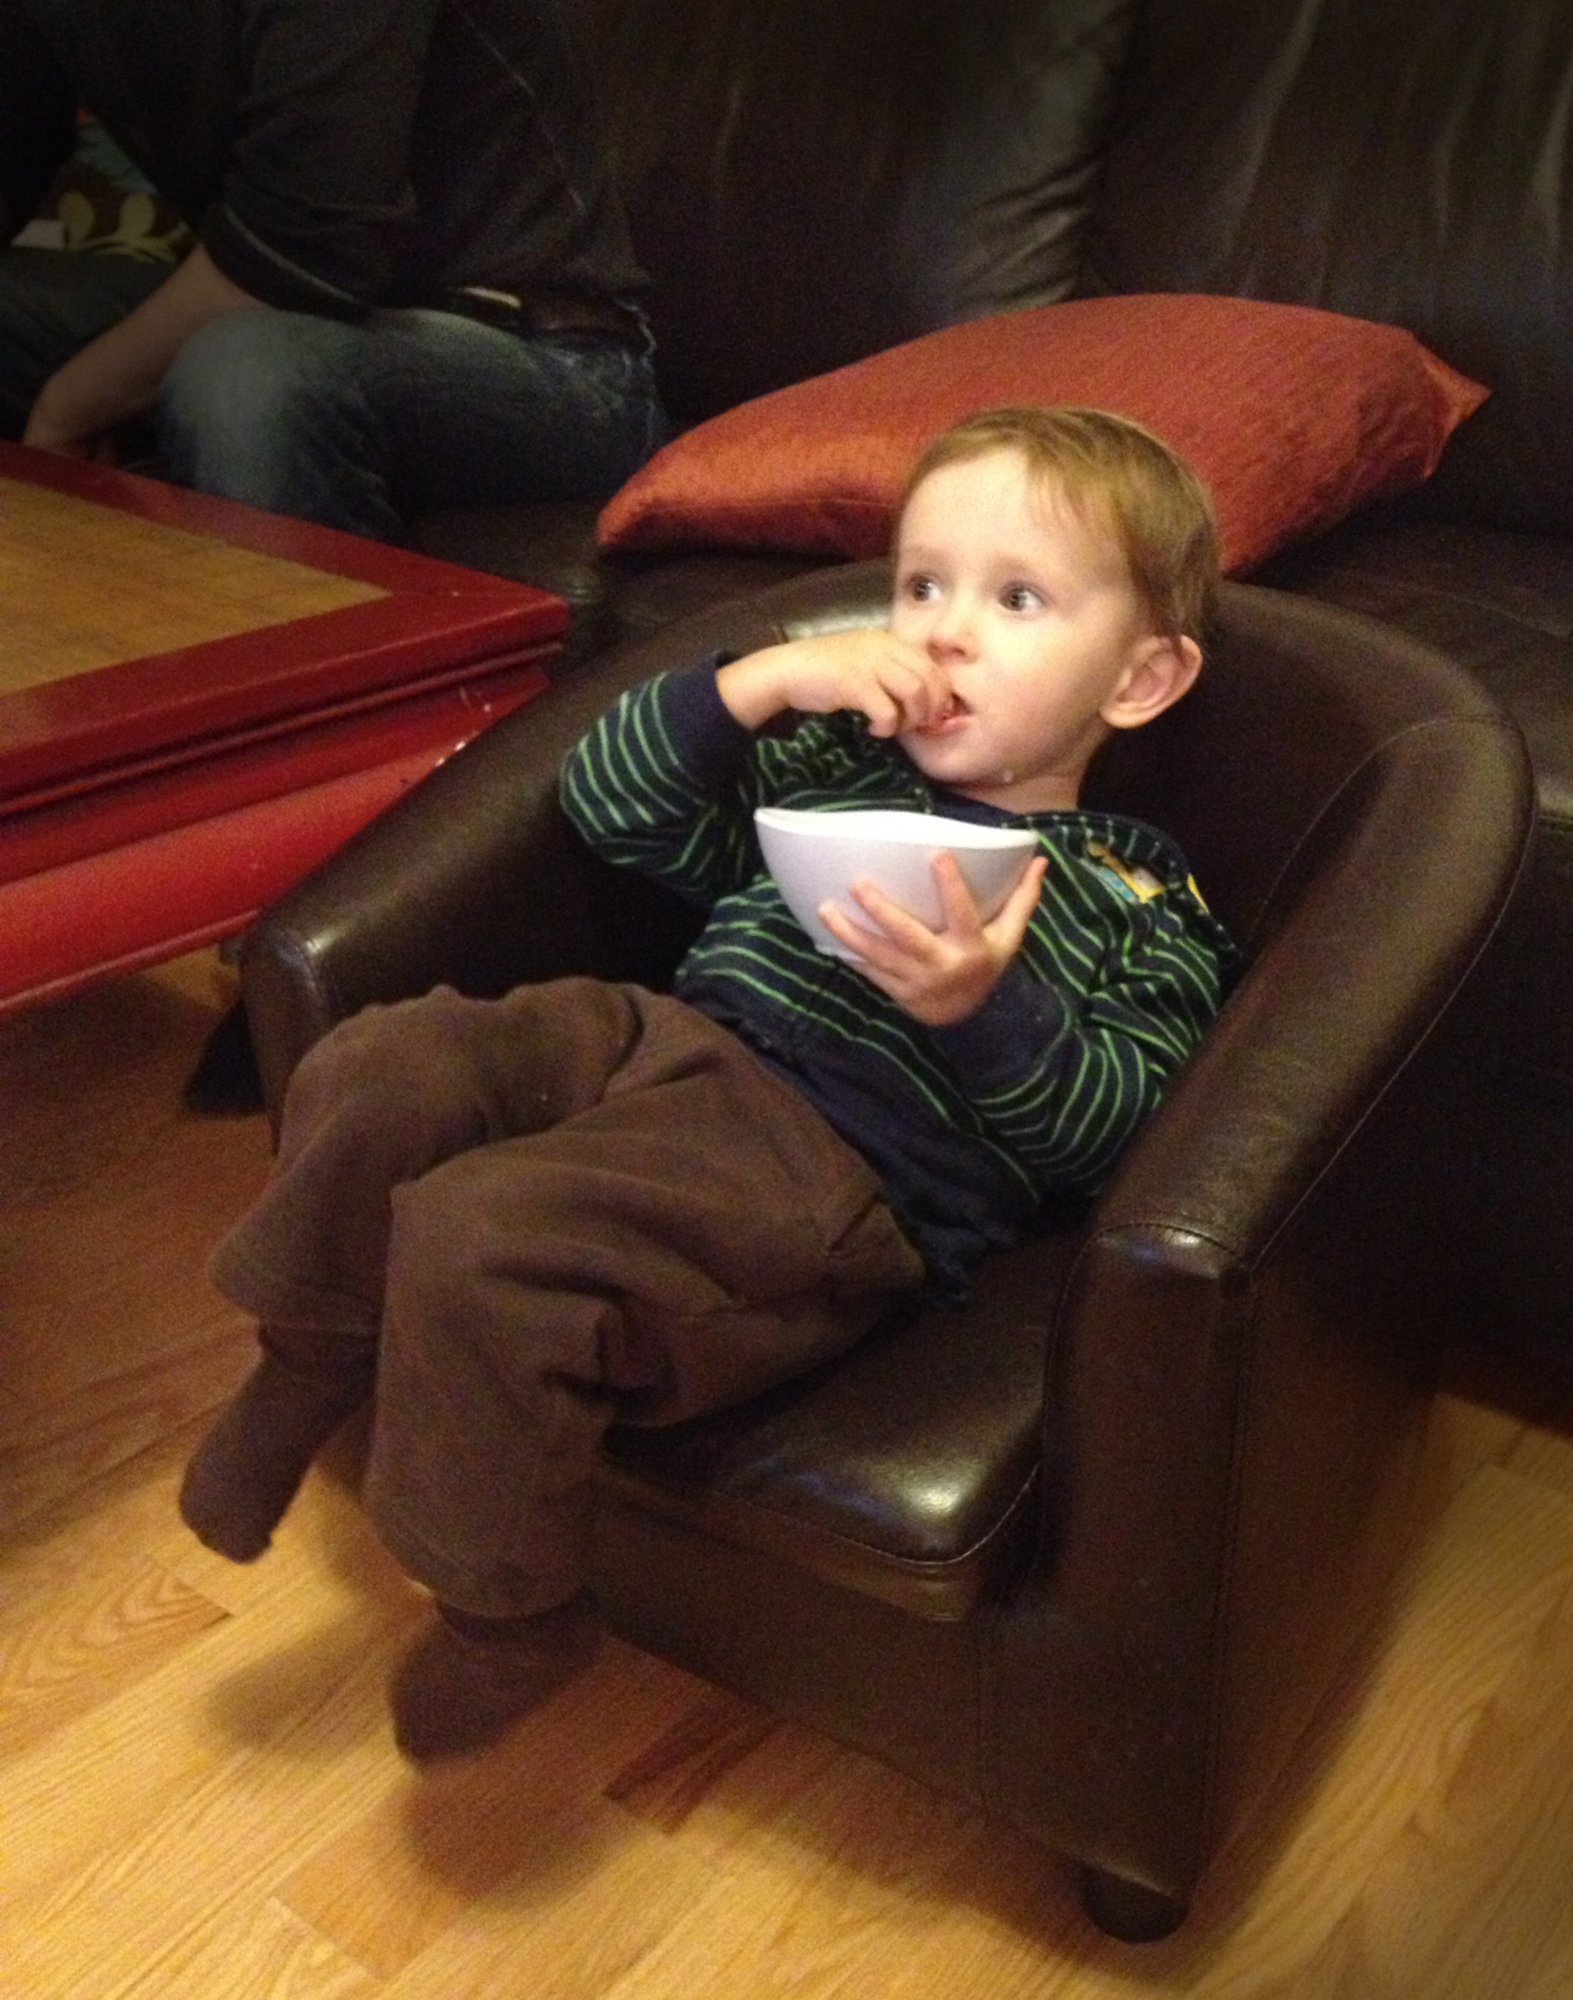 Eating popcorn like a boss